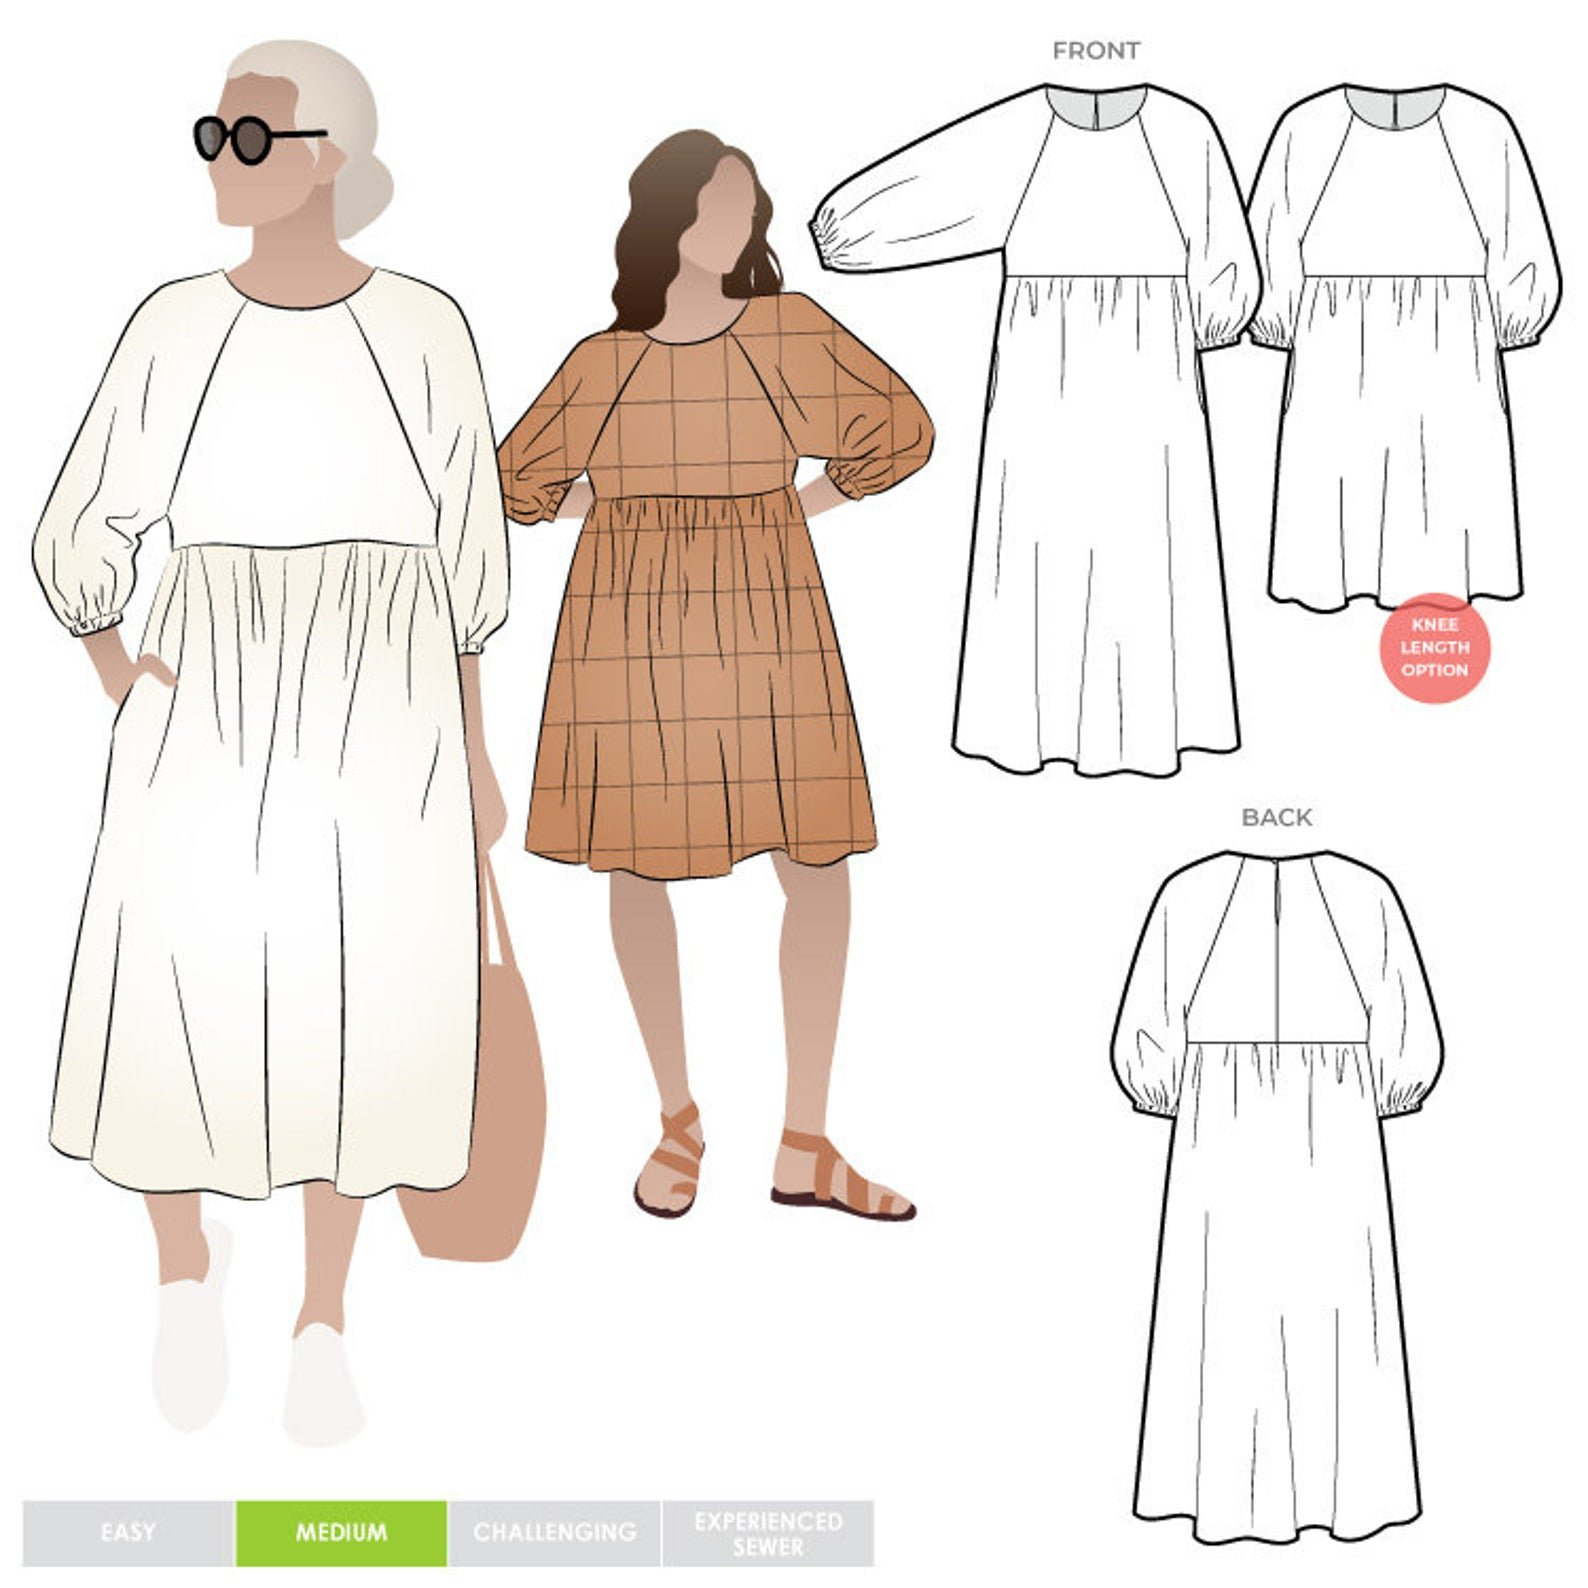 Style Arc Hope Woven Dress - Sizes 4-16 or 18-30